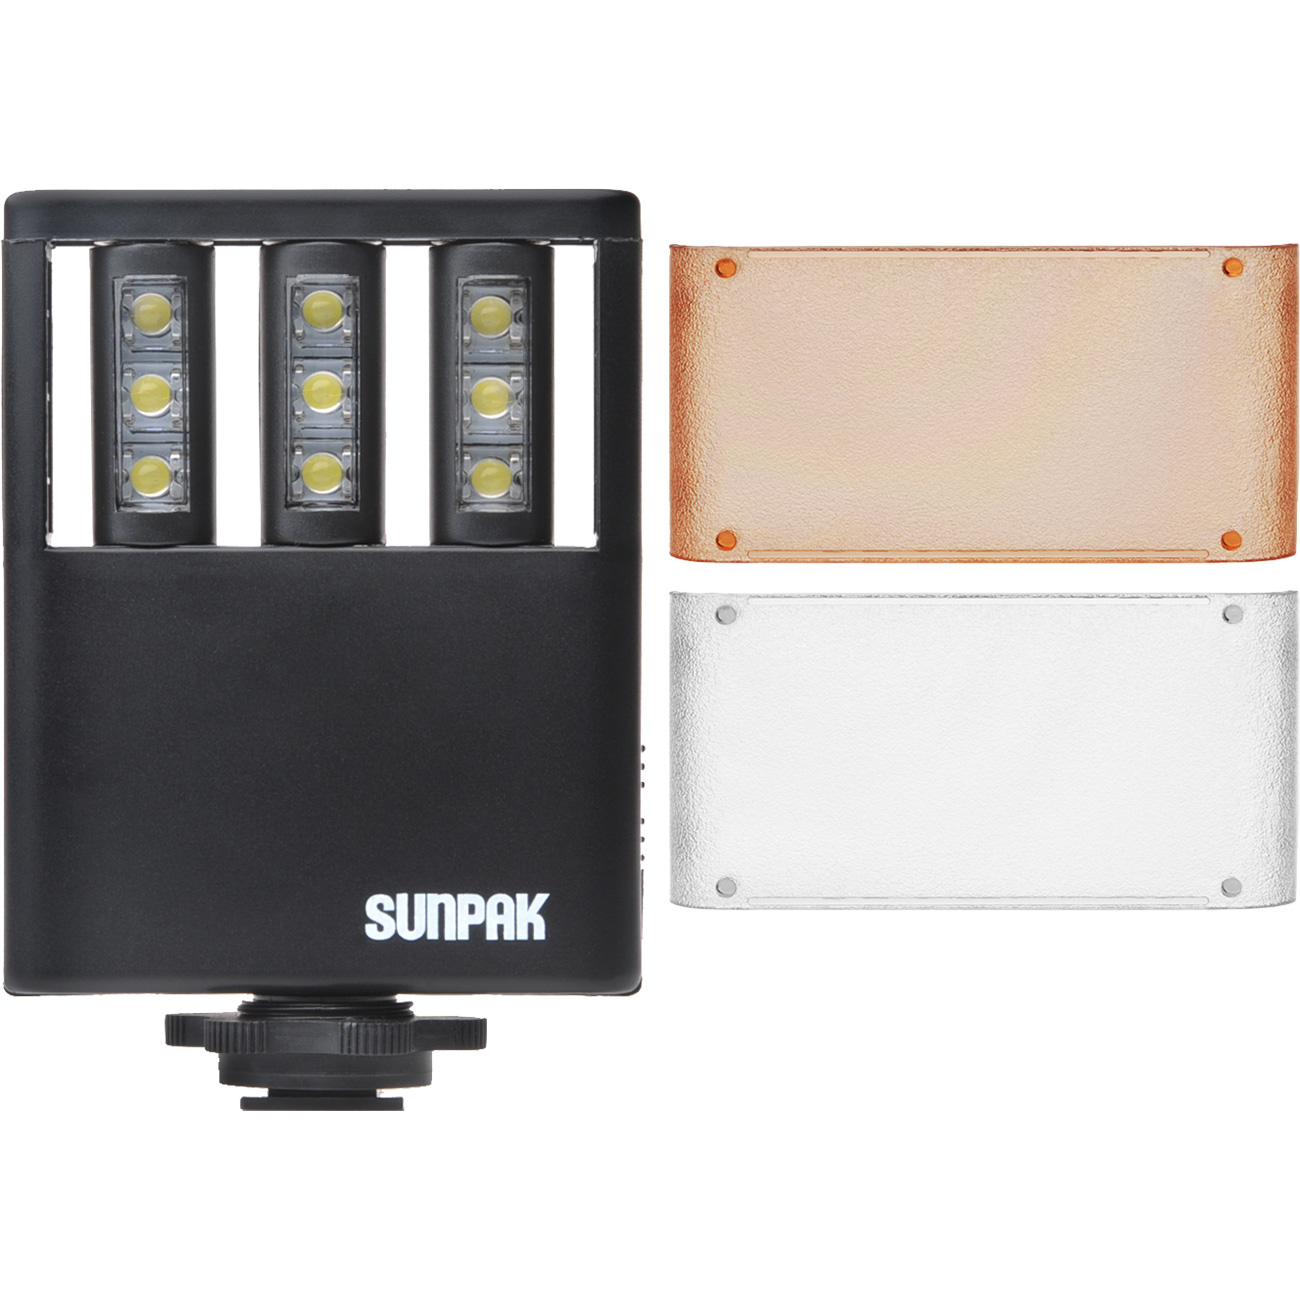 Sunpak LED 9 Video Light - Coverage 609.60 mm to 4572 mm @ 35mm Film Format - 3 x Batteries Supported - AAA